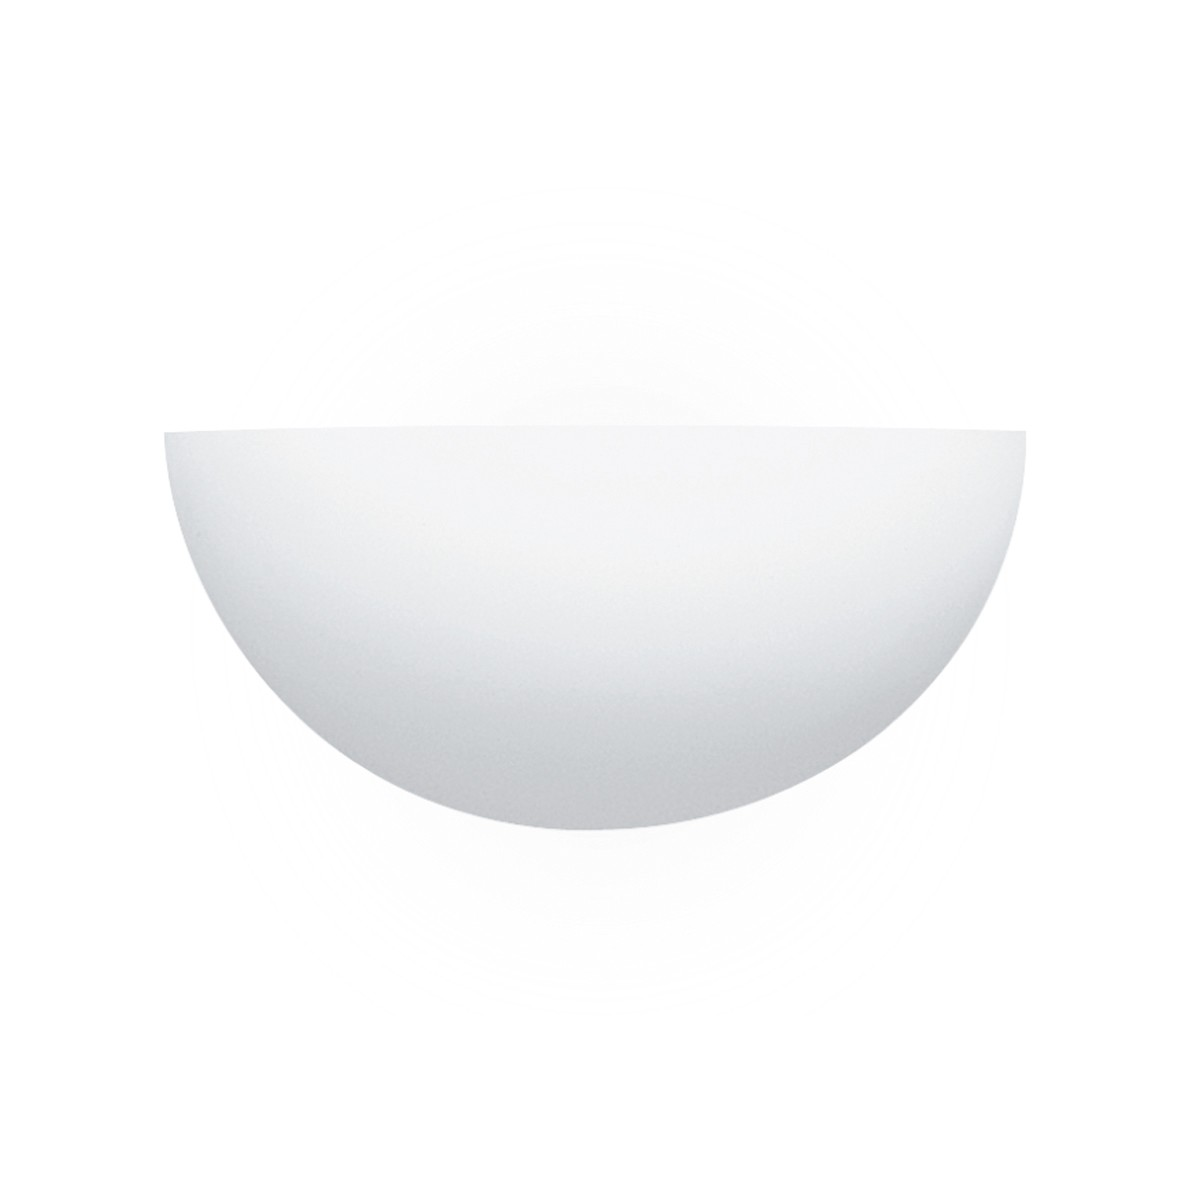 Бра Searchlight 106 Plaster Wall Light